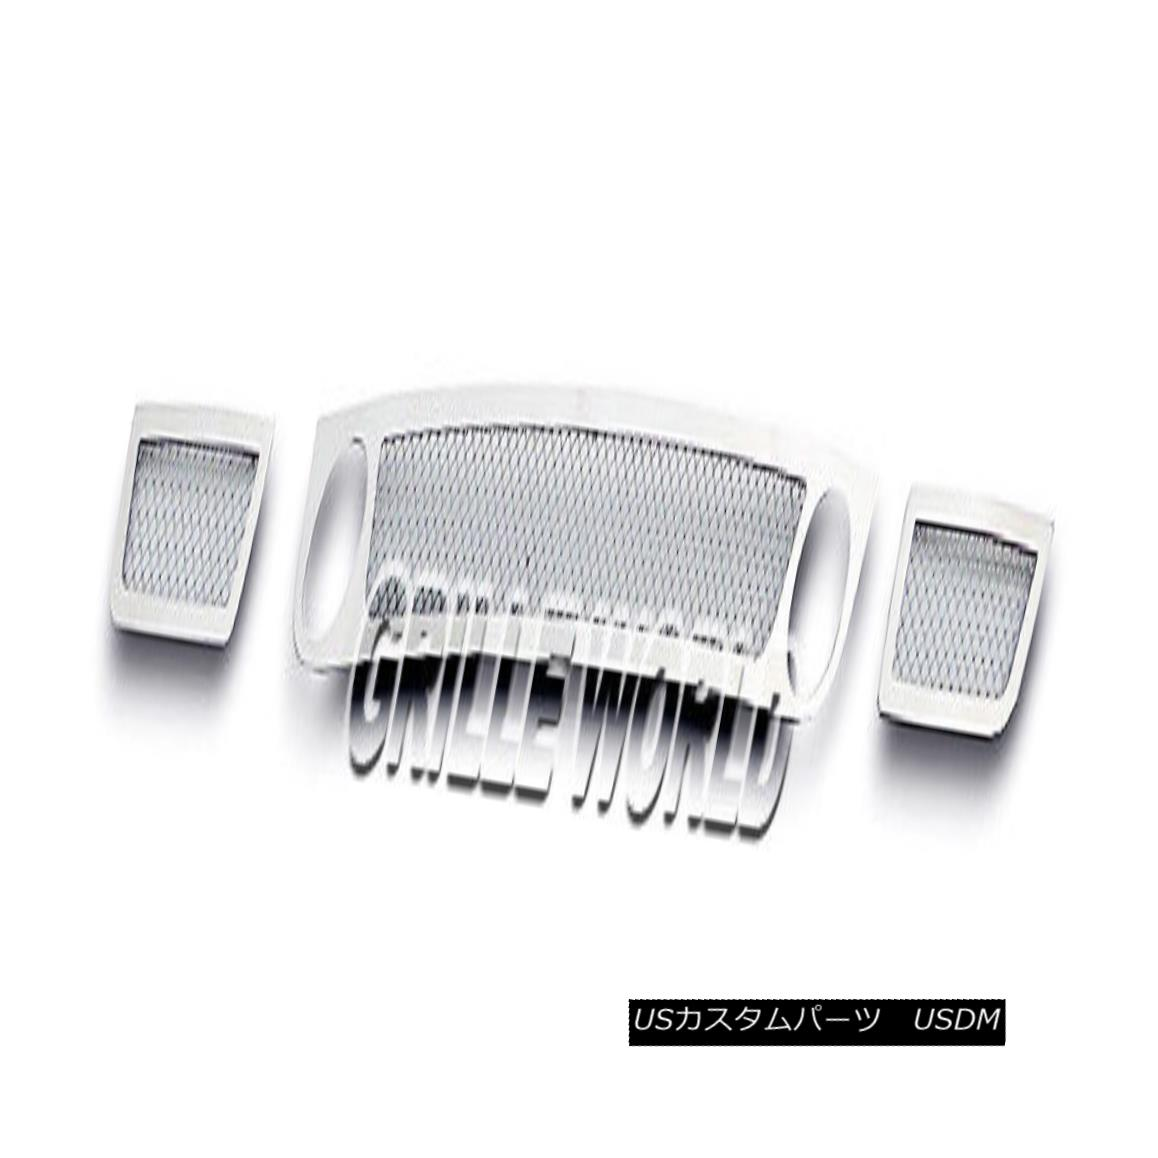 グリル For 06-09 Chevy Trailblazer SS Bumper Mesh Premium Grille Insert 06-09 Chevy Trailblazer SSバンパーメッシュプレミアムグリルインサート